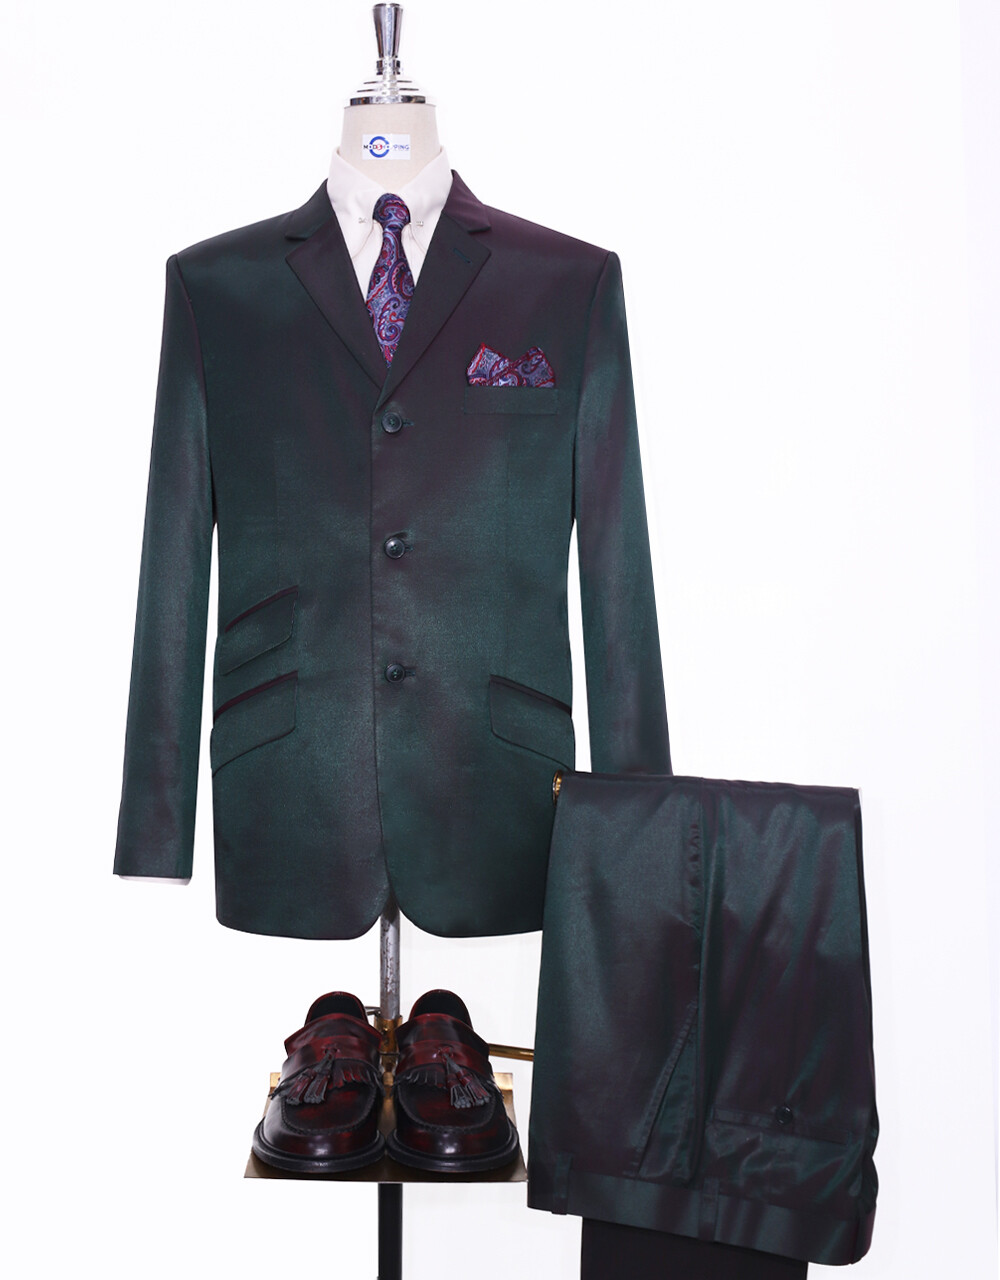 Two Tone Suit   Red & Olive Two-Tone Suit For Men's